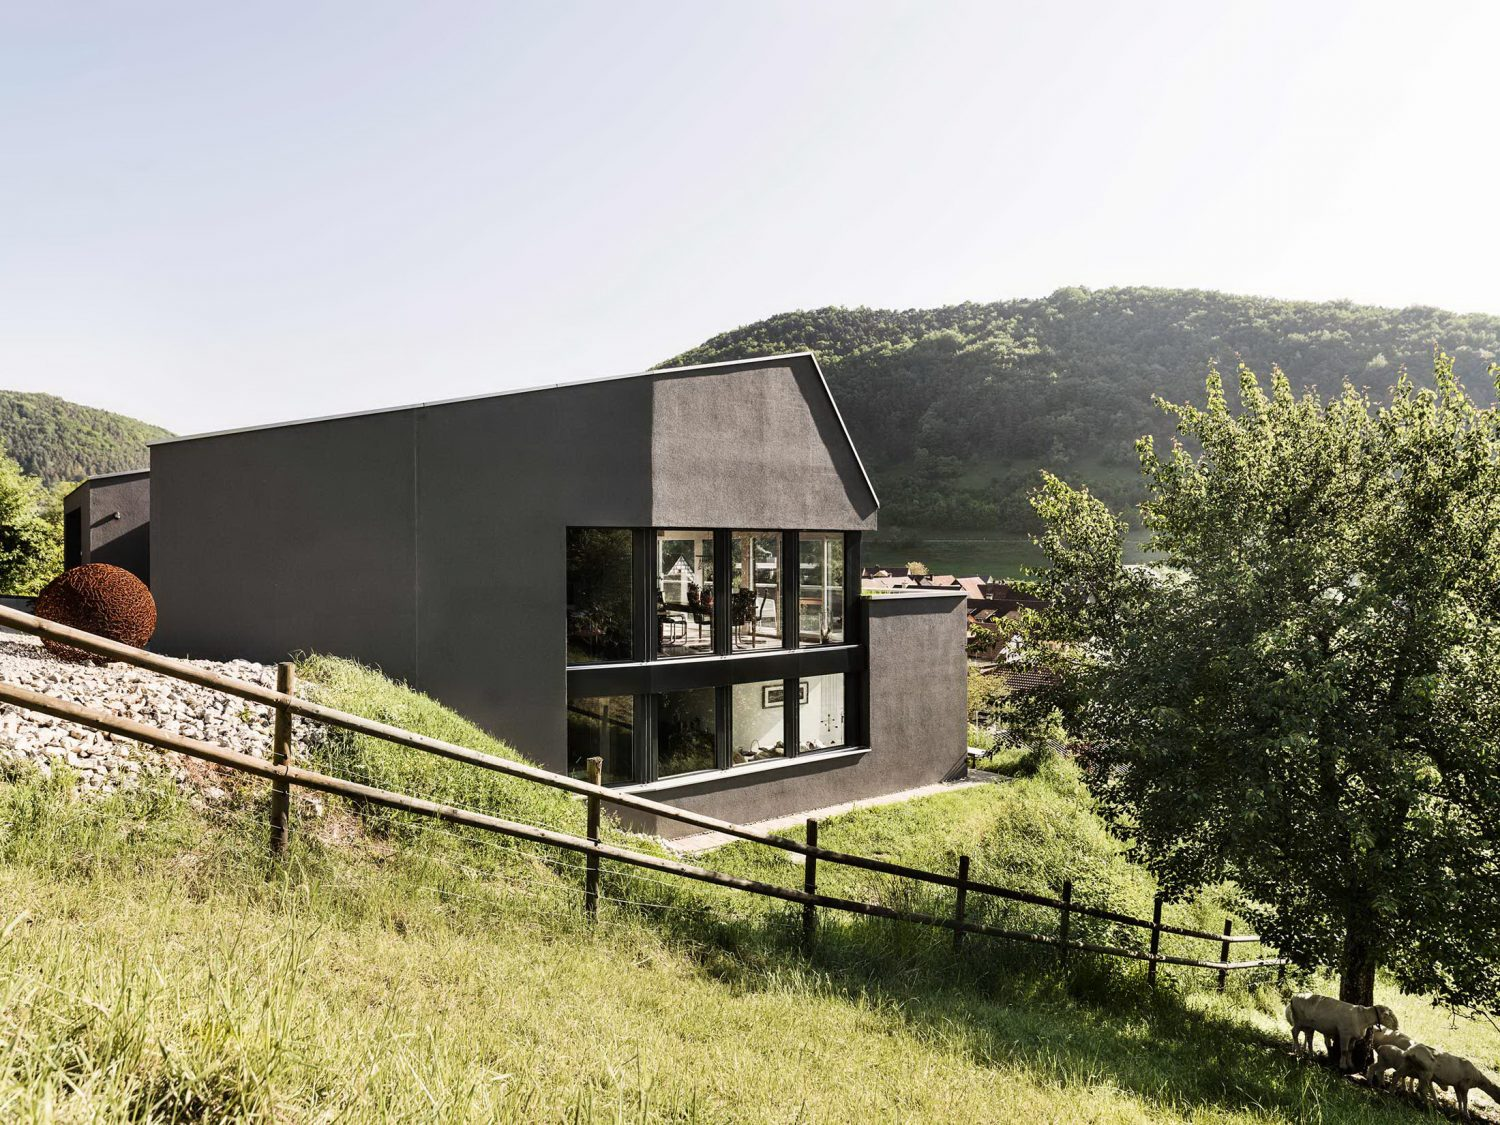 Single Family House on a Slope by Dost